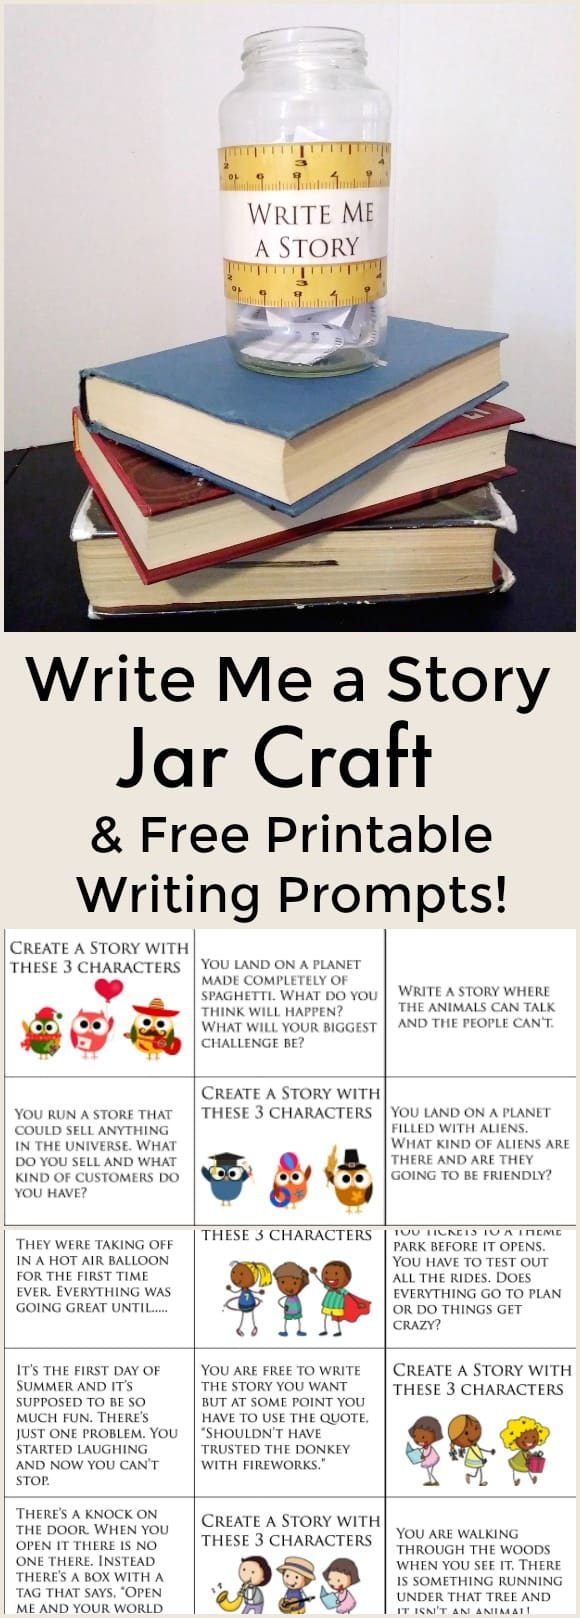 Write Me a Story Jar Craft and Free Printable Writing Prompts